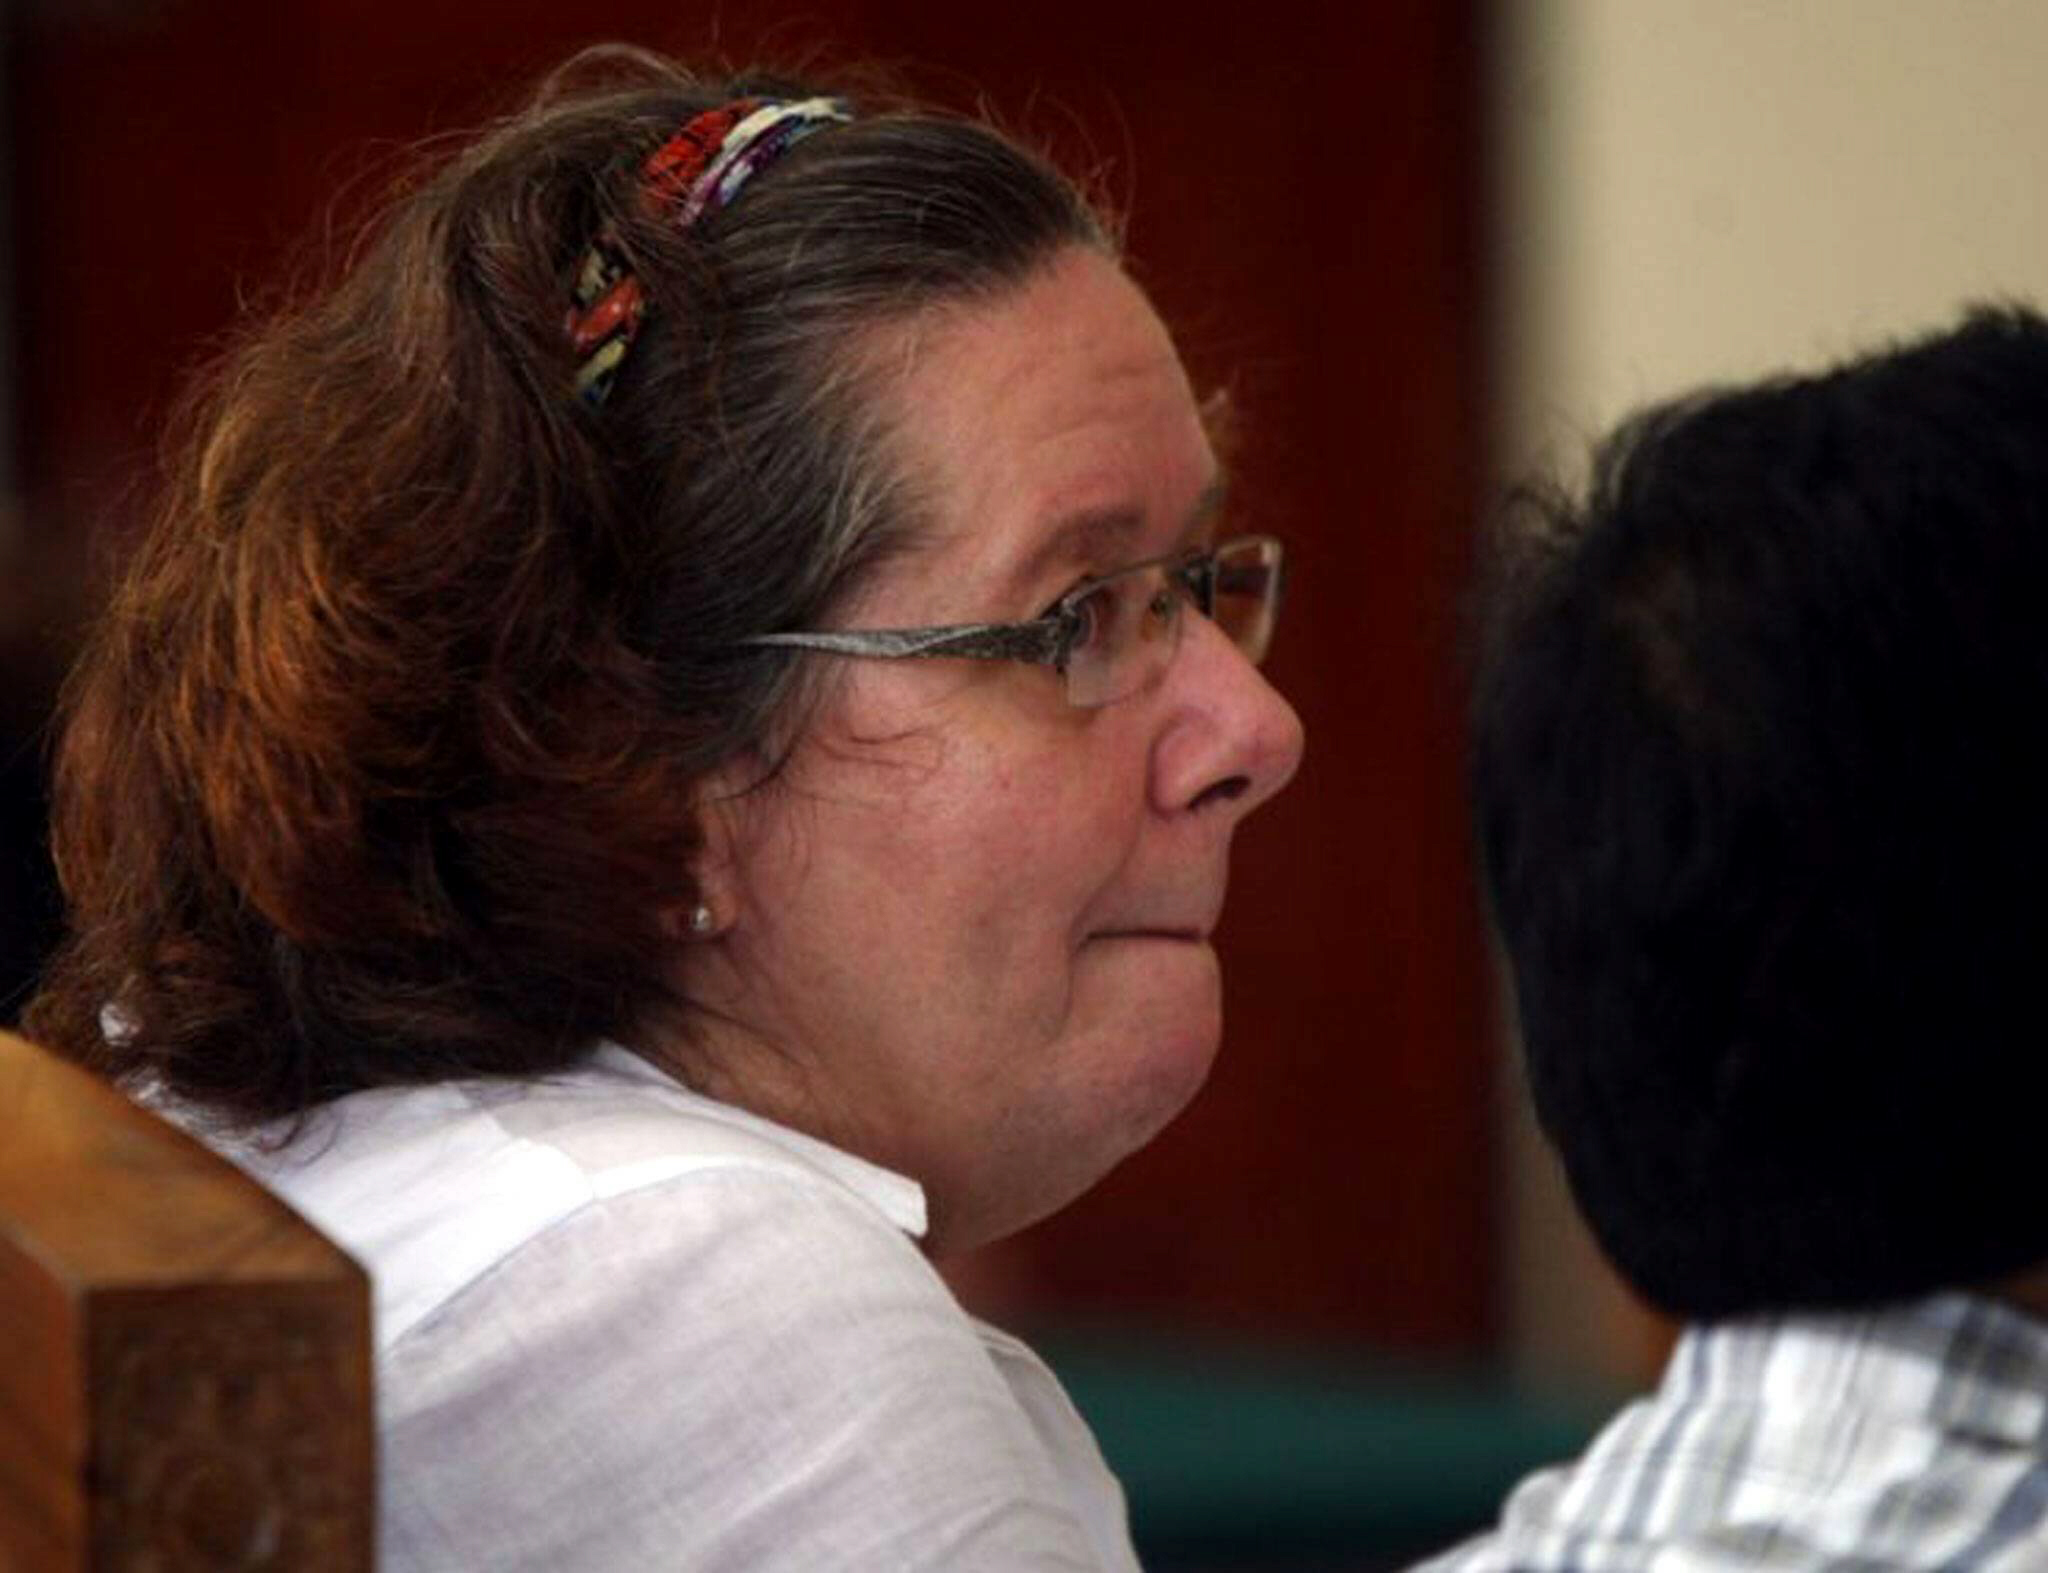 Lindsay Sandiford, 56, was sentenced to death